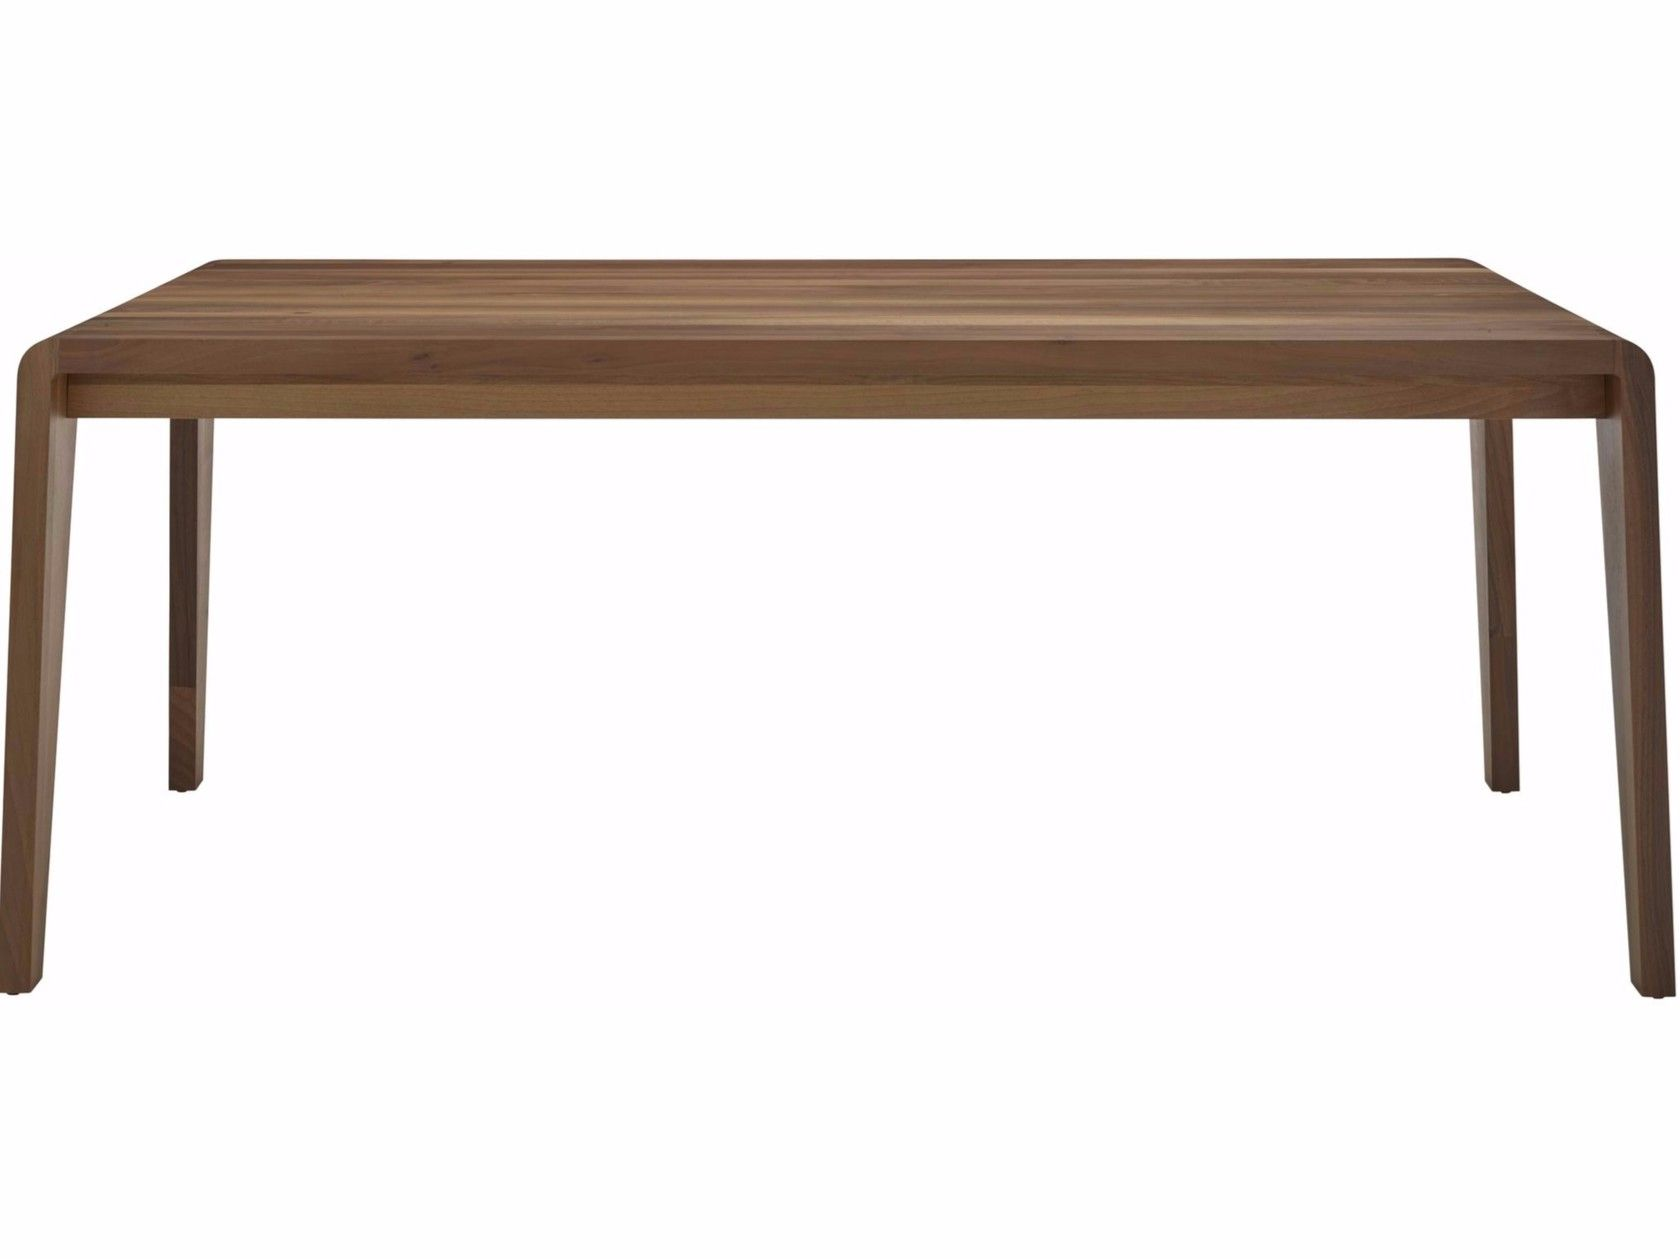 Walnut Dining Table Spirit Of Forest By Ligne Roset Design Peter Maly